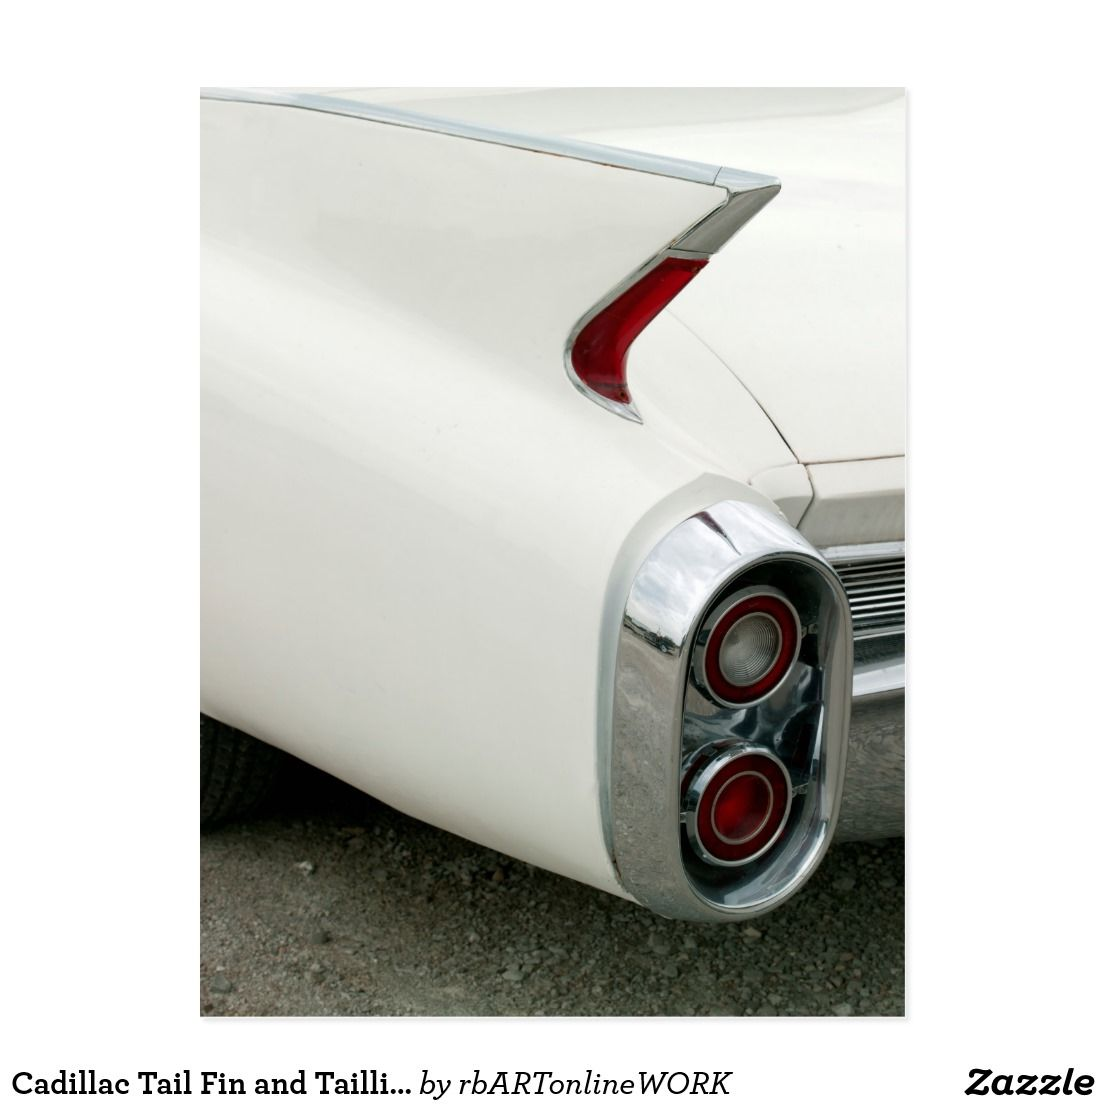 Cadillac Tail Fin and Taillights Postcard | Zazzle.com